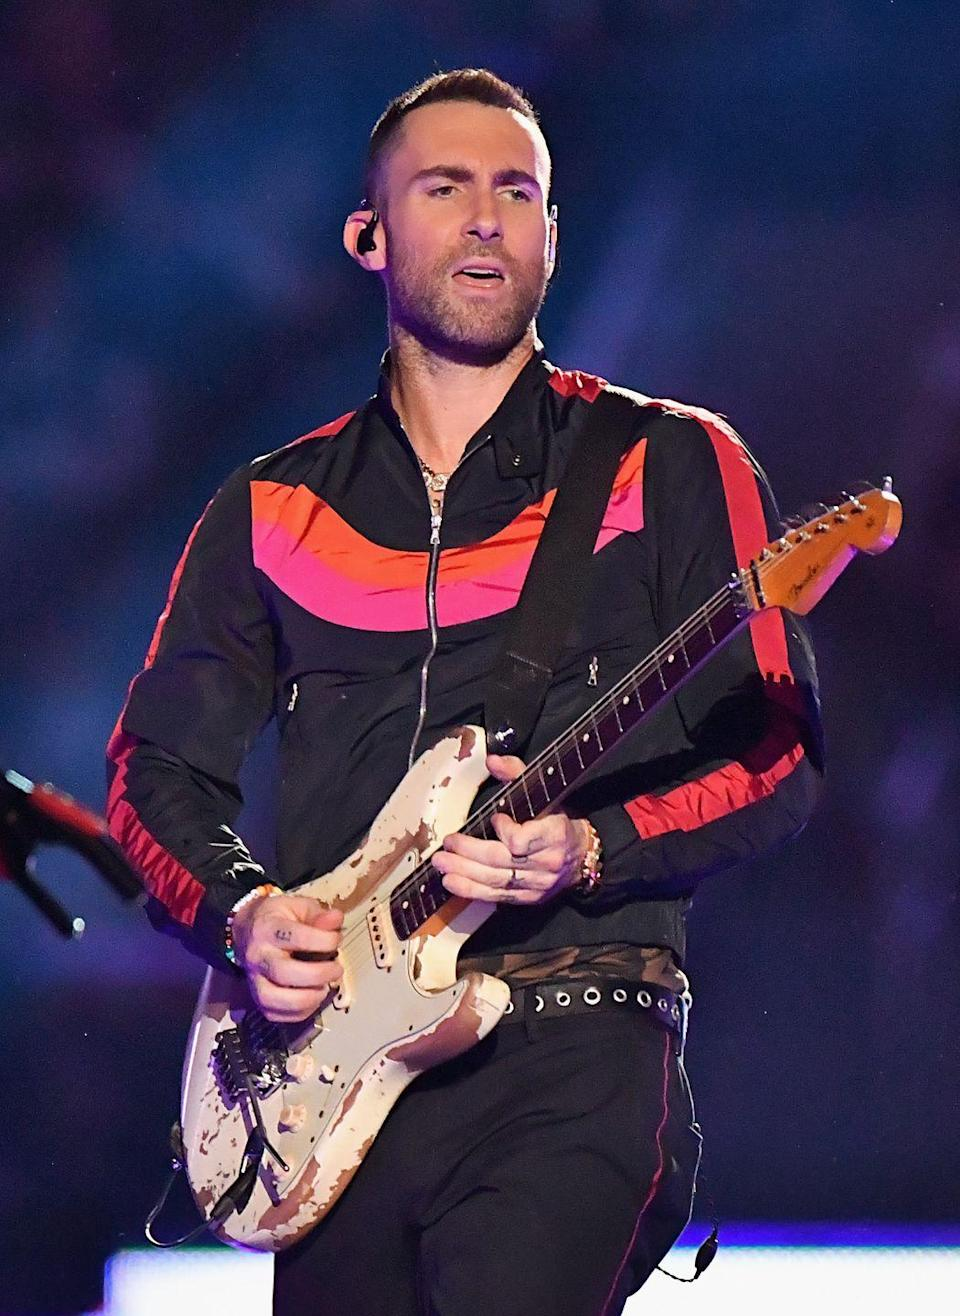 <p><strong>Hair</strong></p><p>From his sold-out concerts to sitting in the judges' chair on <em>The Voice</em>, Levine isn't afraid to experiment with fashion. </p>